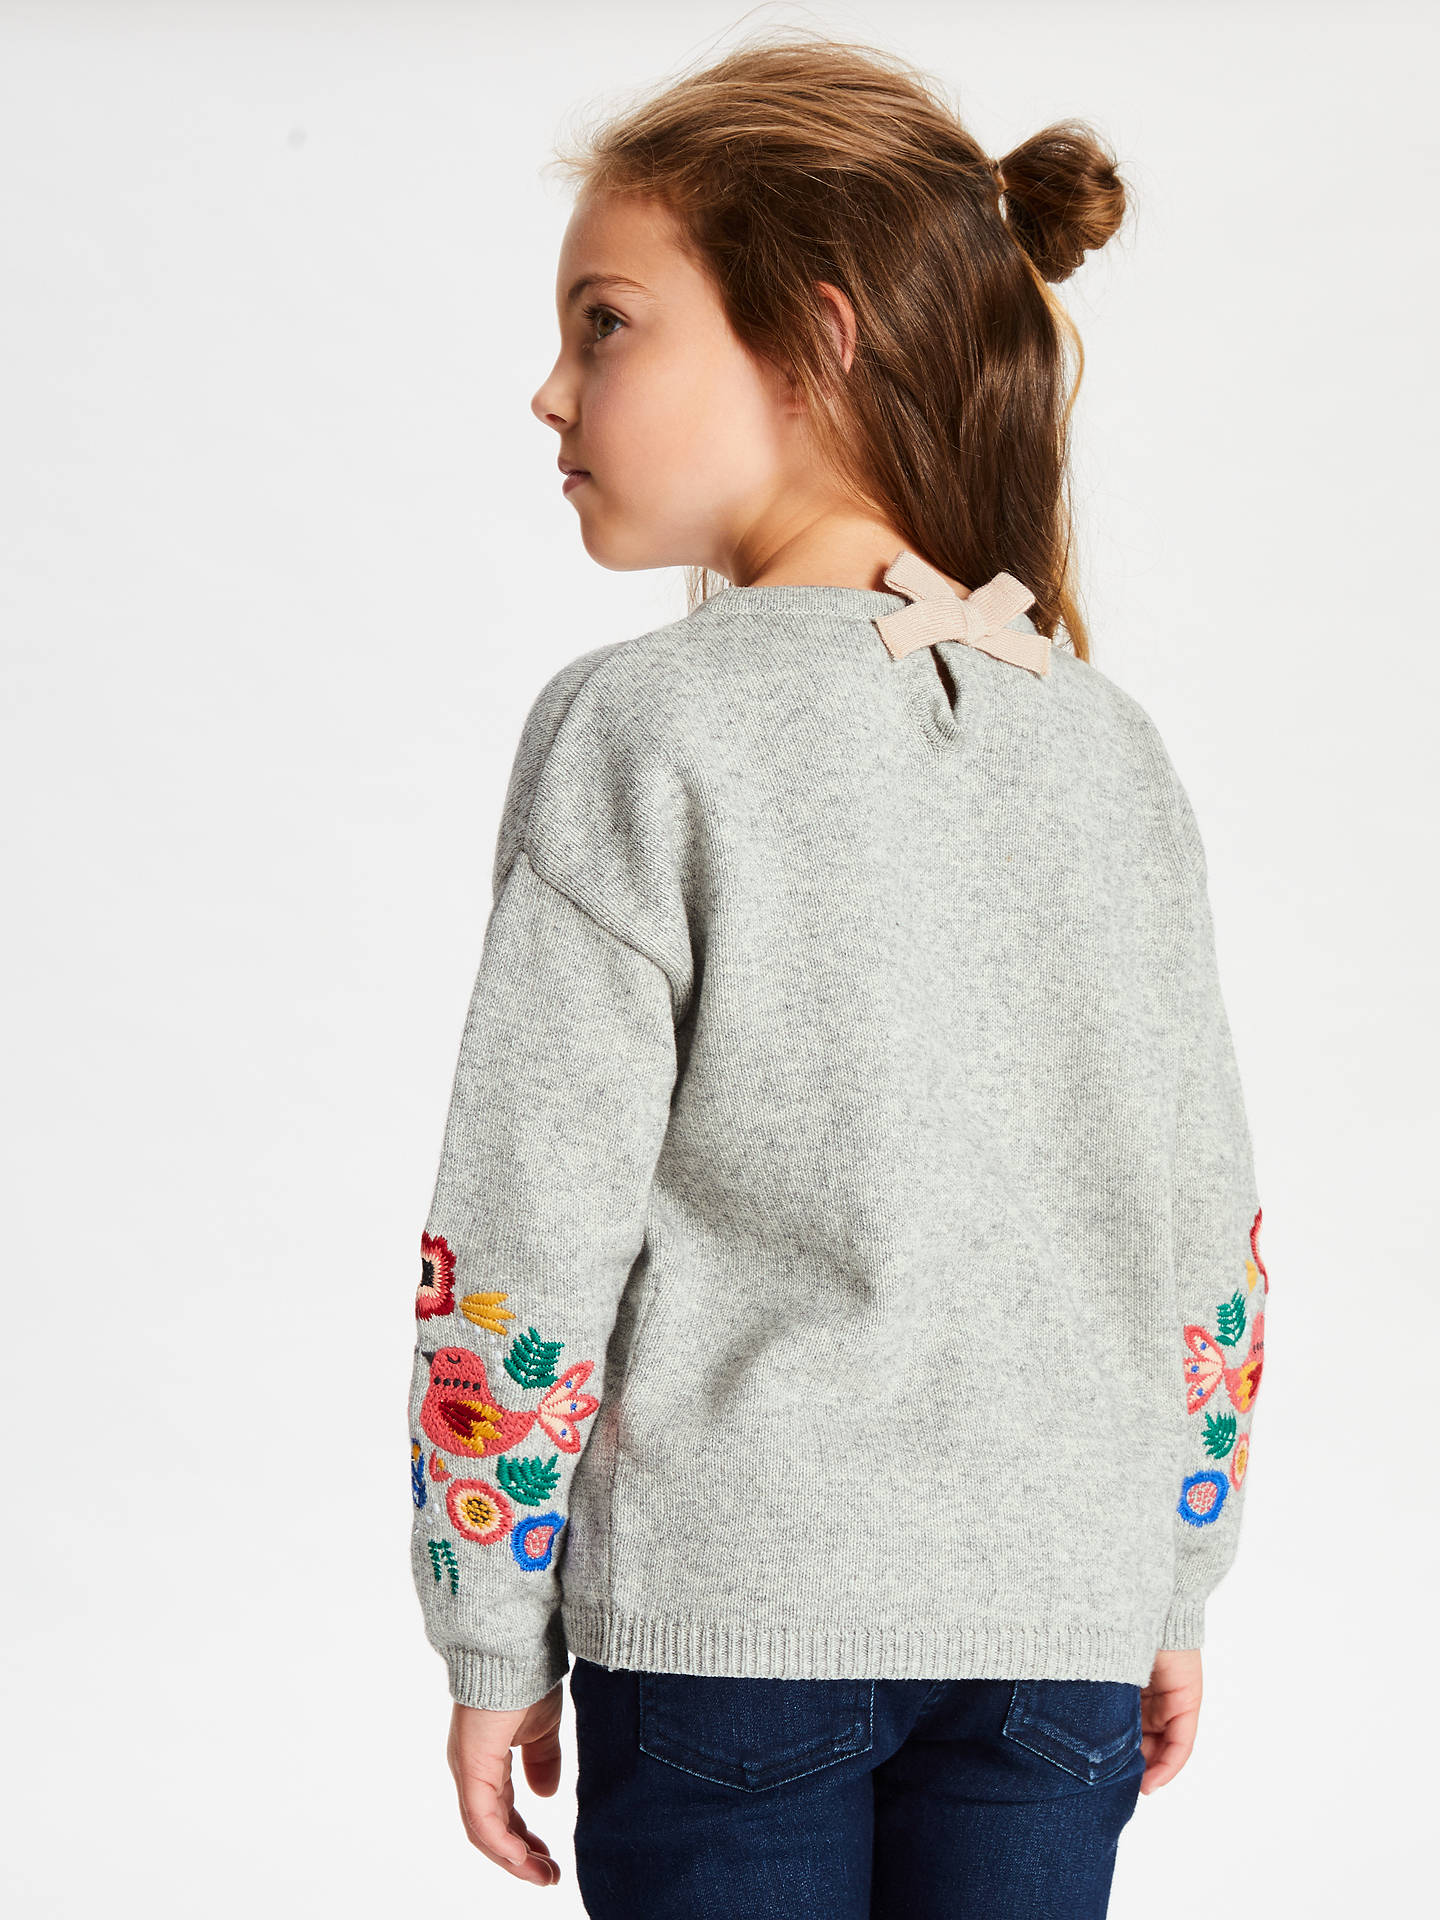 Buy John Lewis & Partners Girls' Embroidered Jumper, Grey, 2 years Online at johnlewis.com